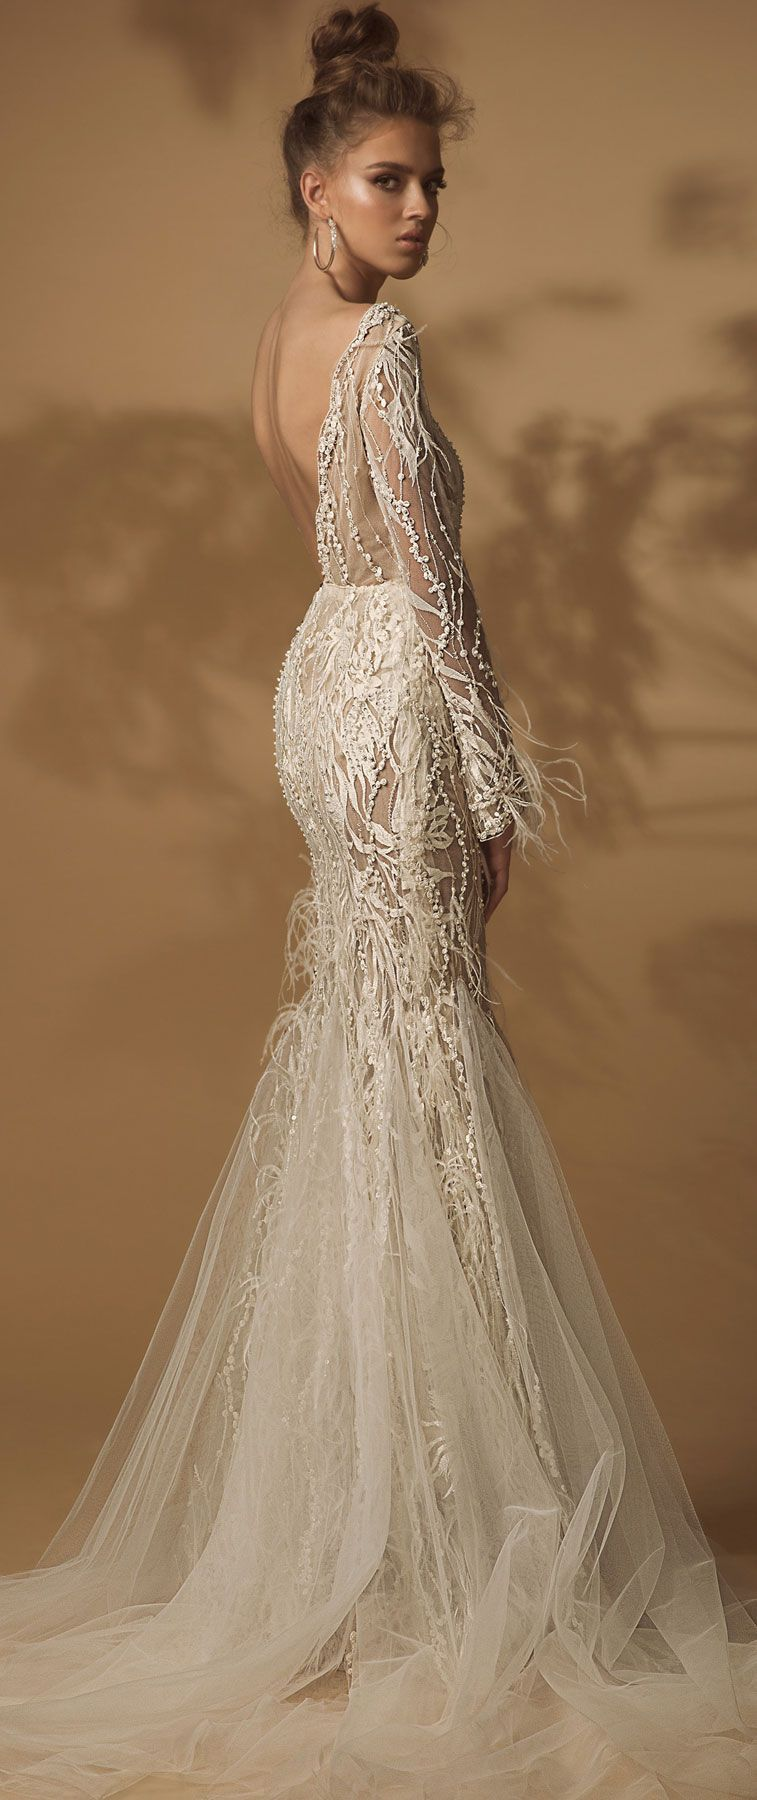 Long sleeves heavy embellishment fit and flare wedding dress #wedding #weddingdress #weddinggown